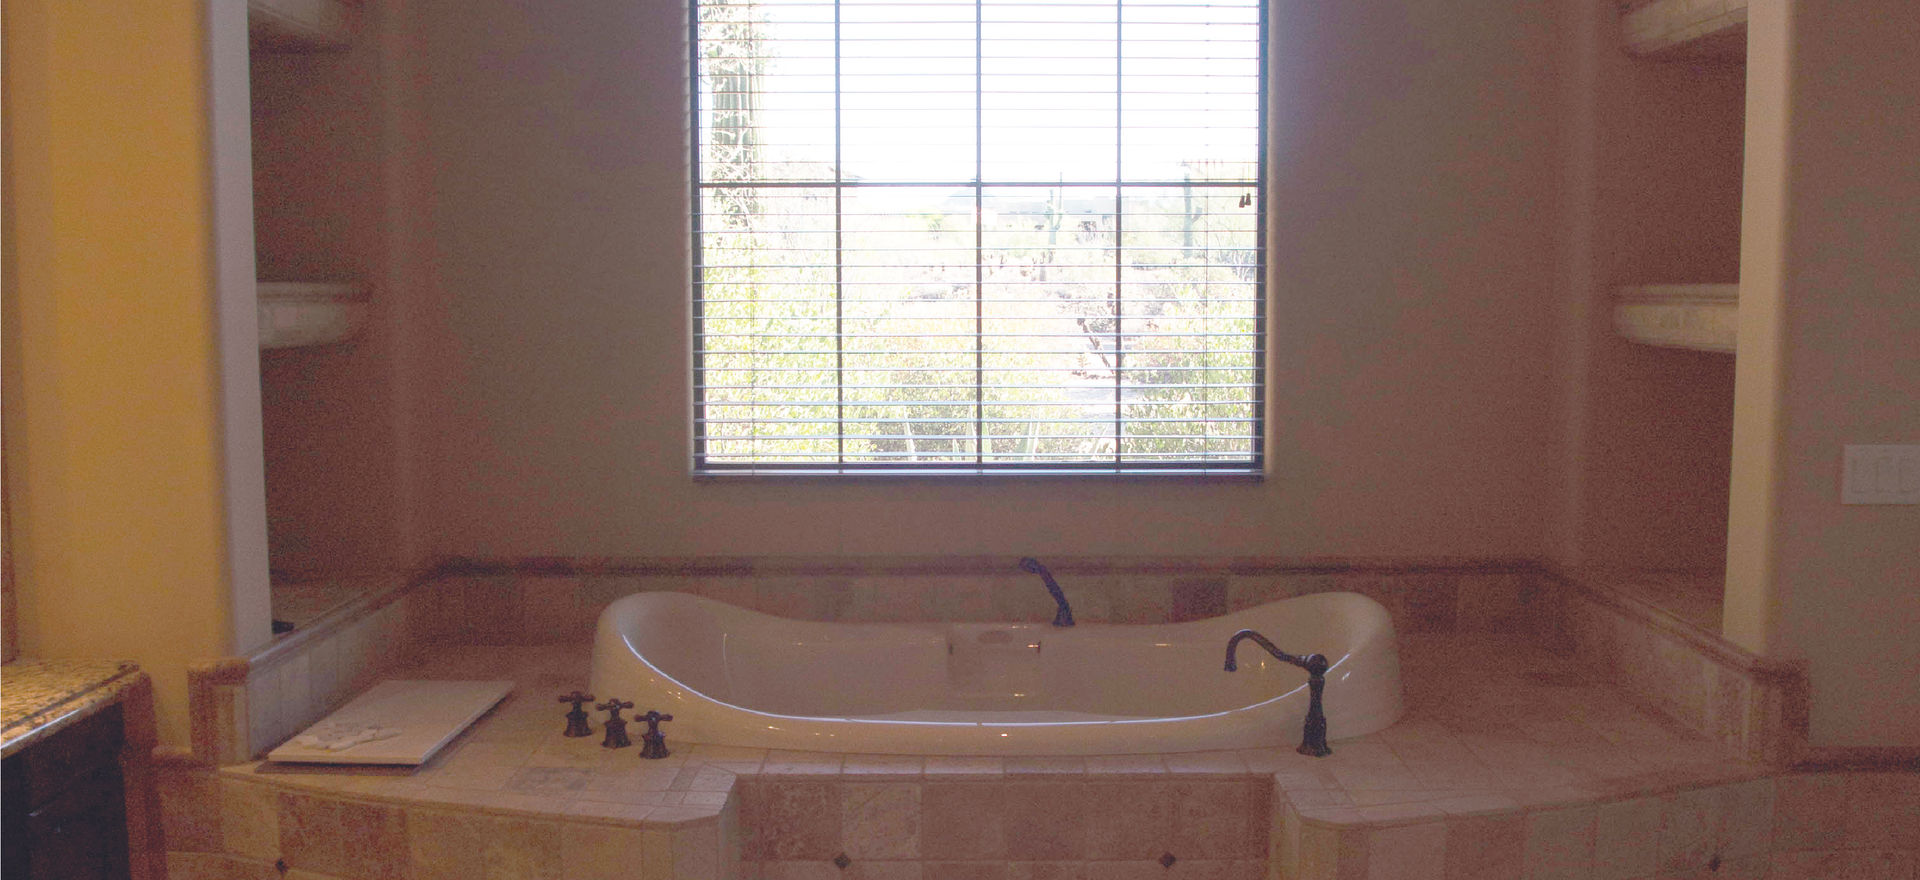 Removed the tub, surround and built ins on either side.